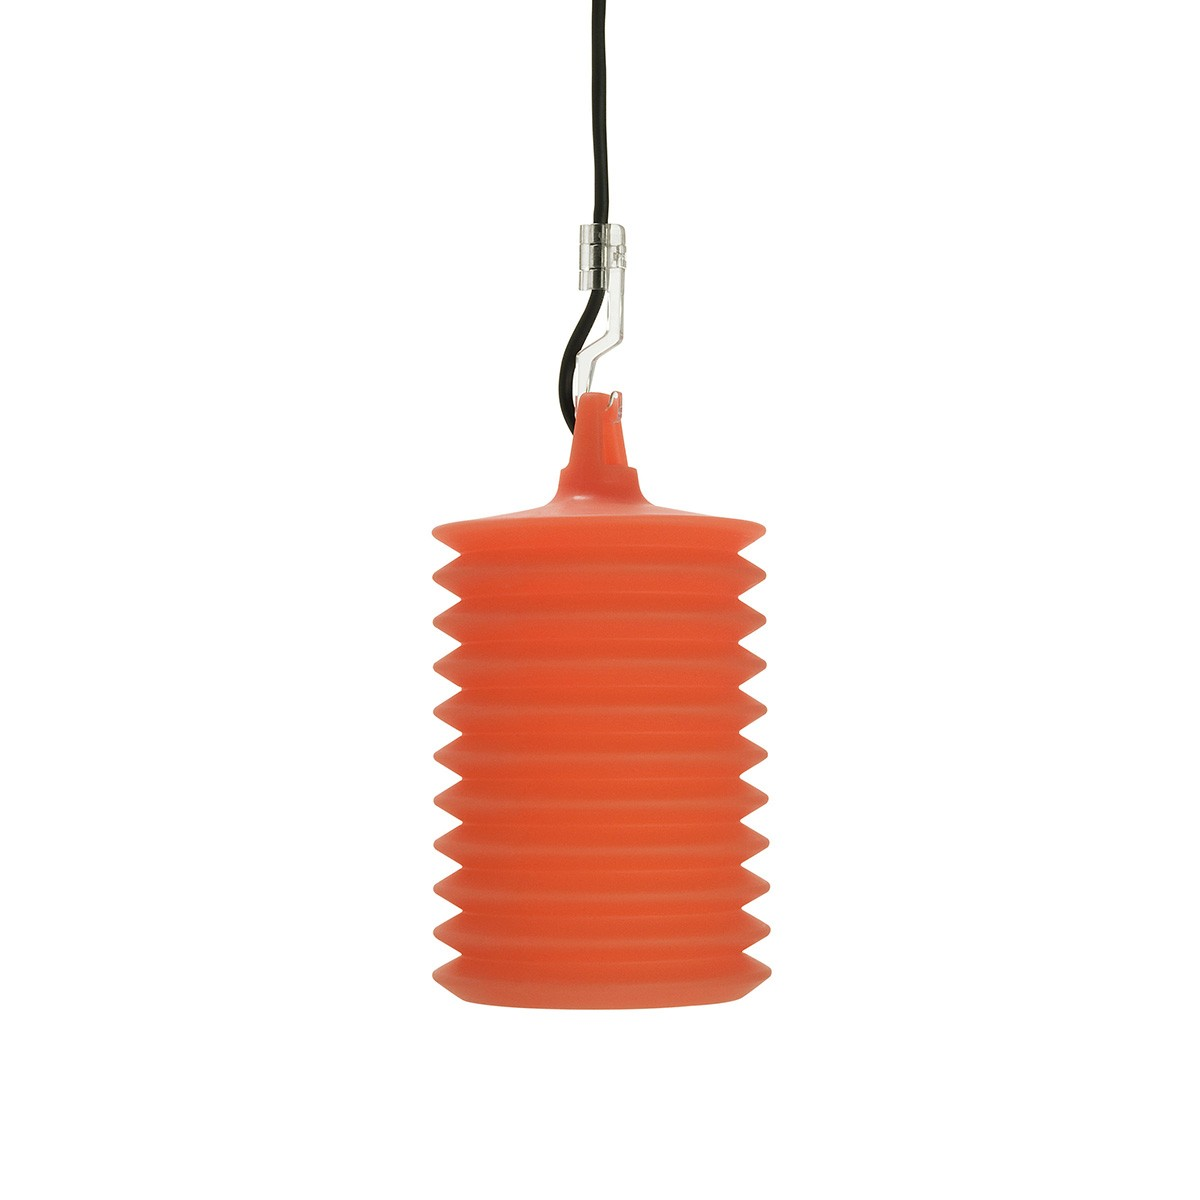 Rotaliana Lampion H2 Pendelleuchte, orange, ohne Stecker